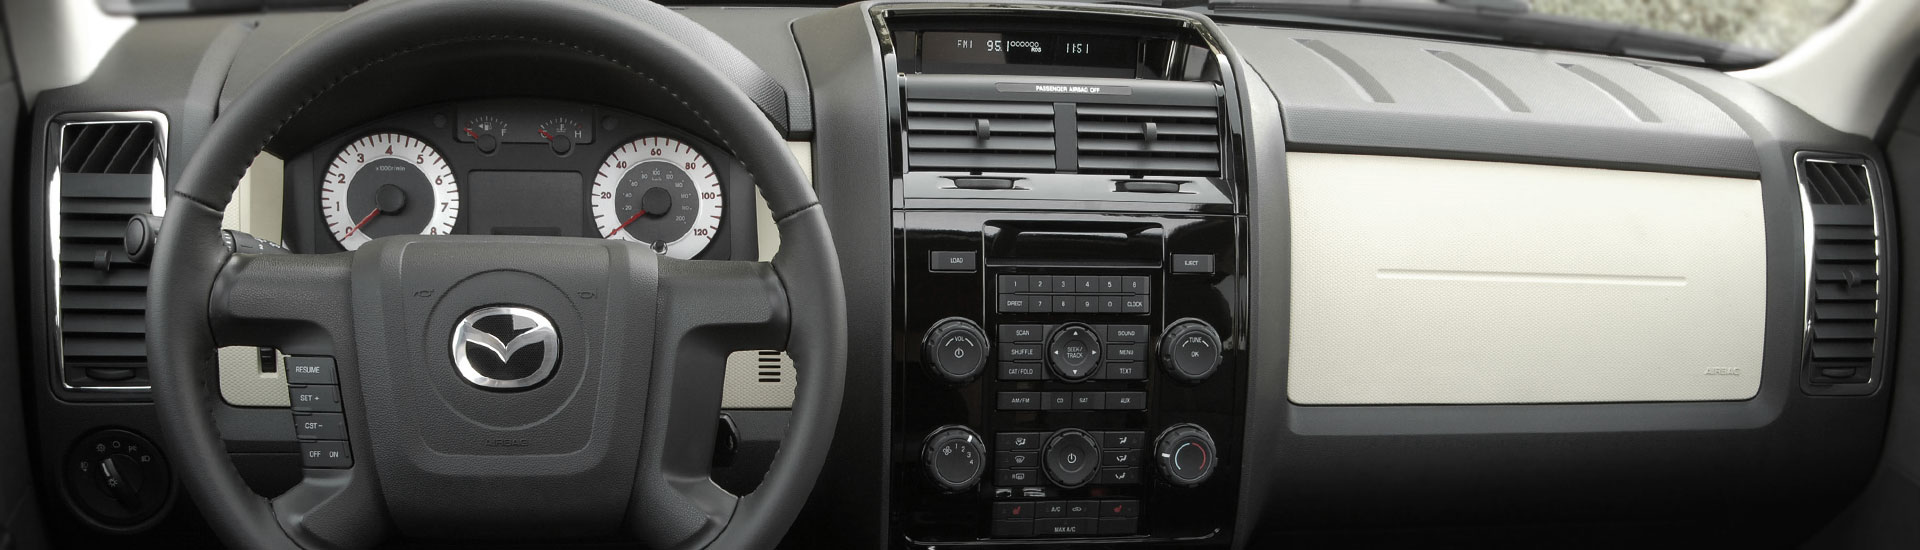 Mazda Tribute Custom Dash Kits